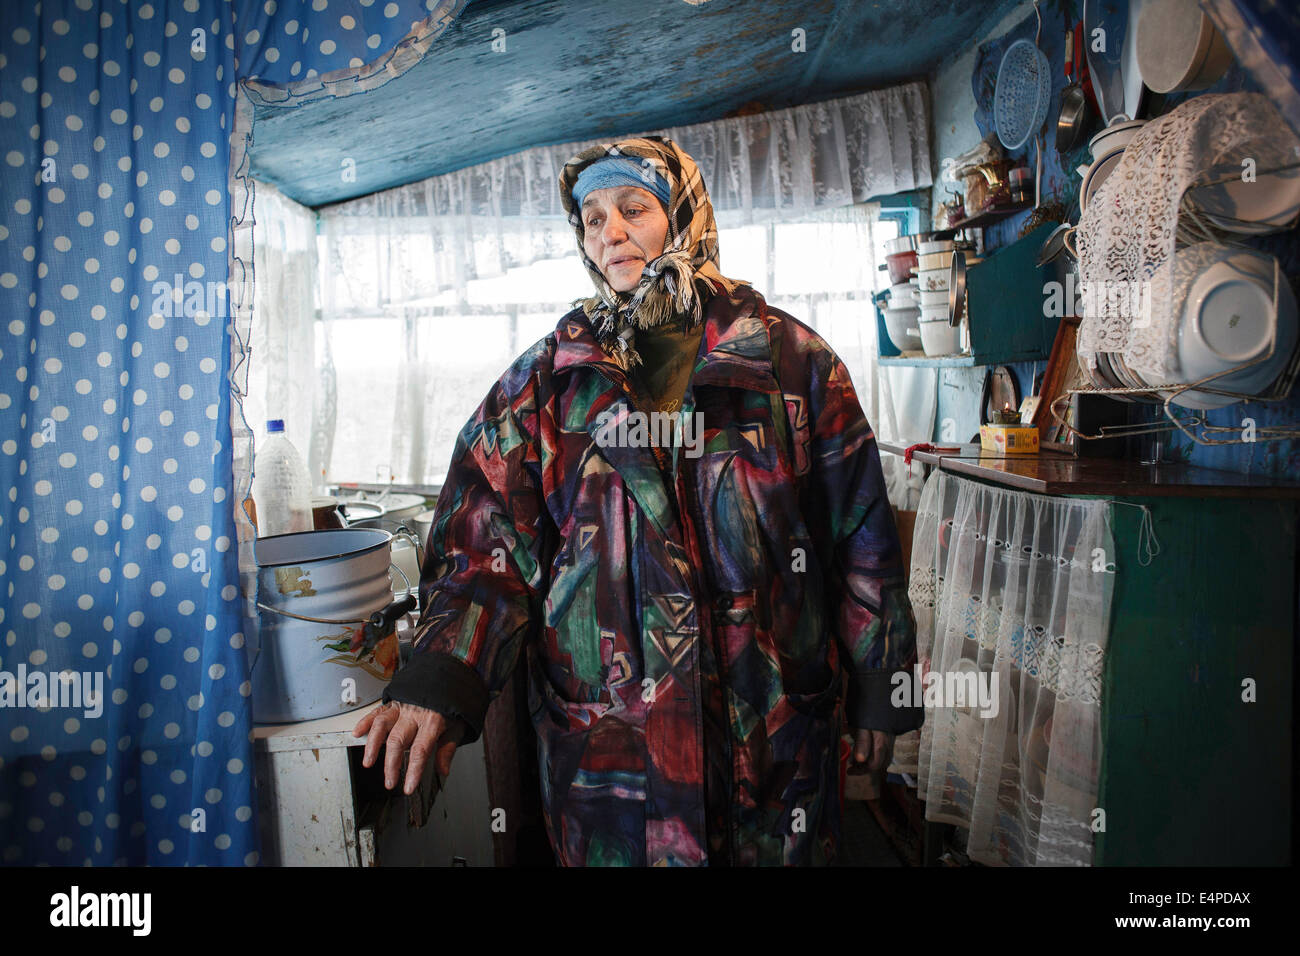 Tuberculosis in Moldova, mother of a critically ill patient in a Roma settlement, Stefanesti, Moldova - Stock Image